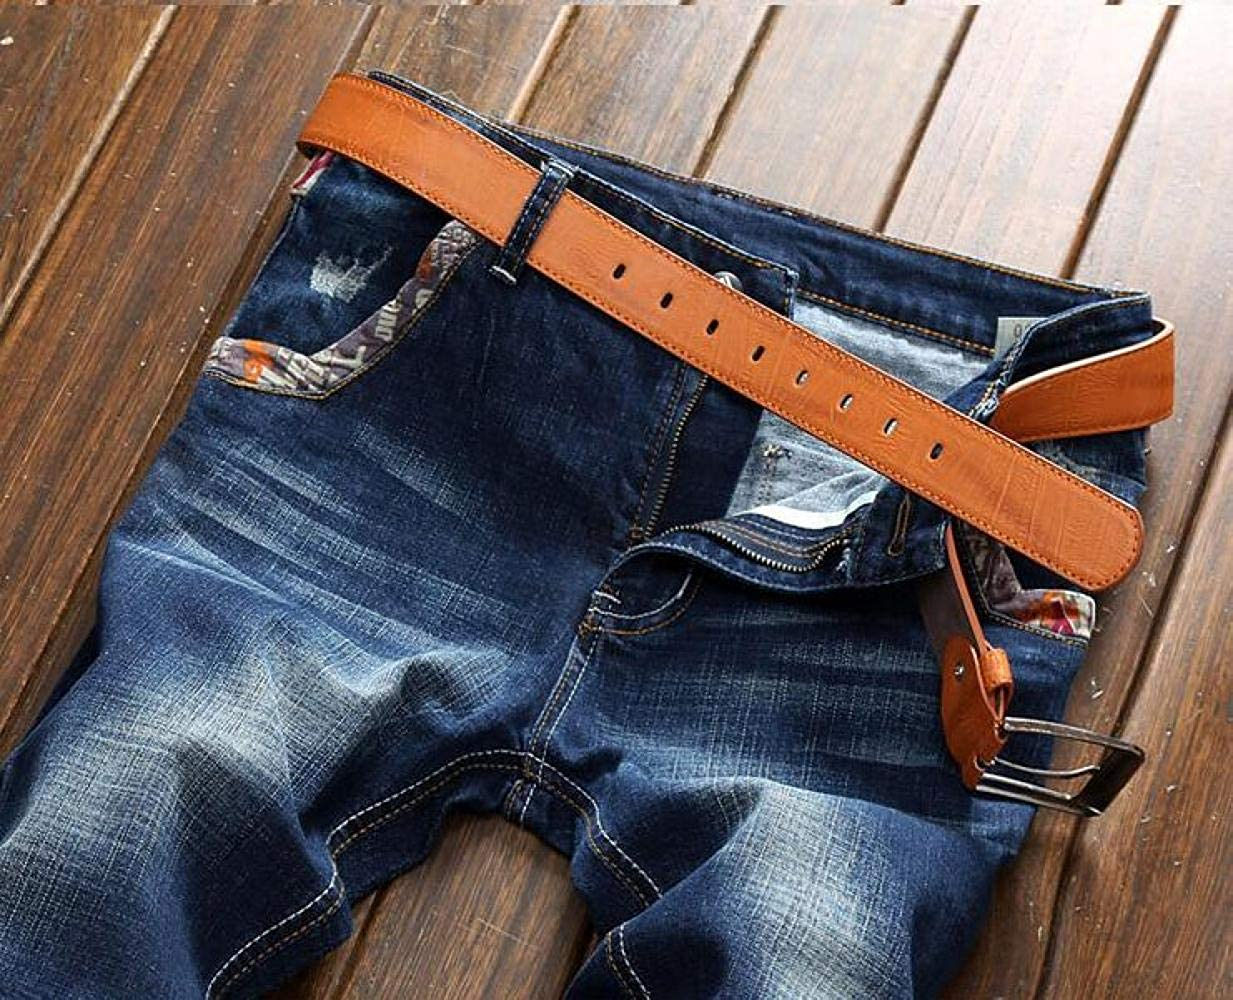 YRHDC Mens Hole Stretch Straight Jeans Leisure Slim Fit Skinny Denim Trousers Cotton Pants